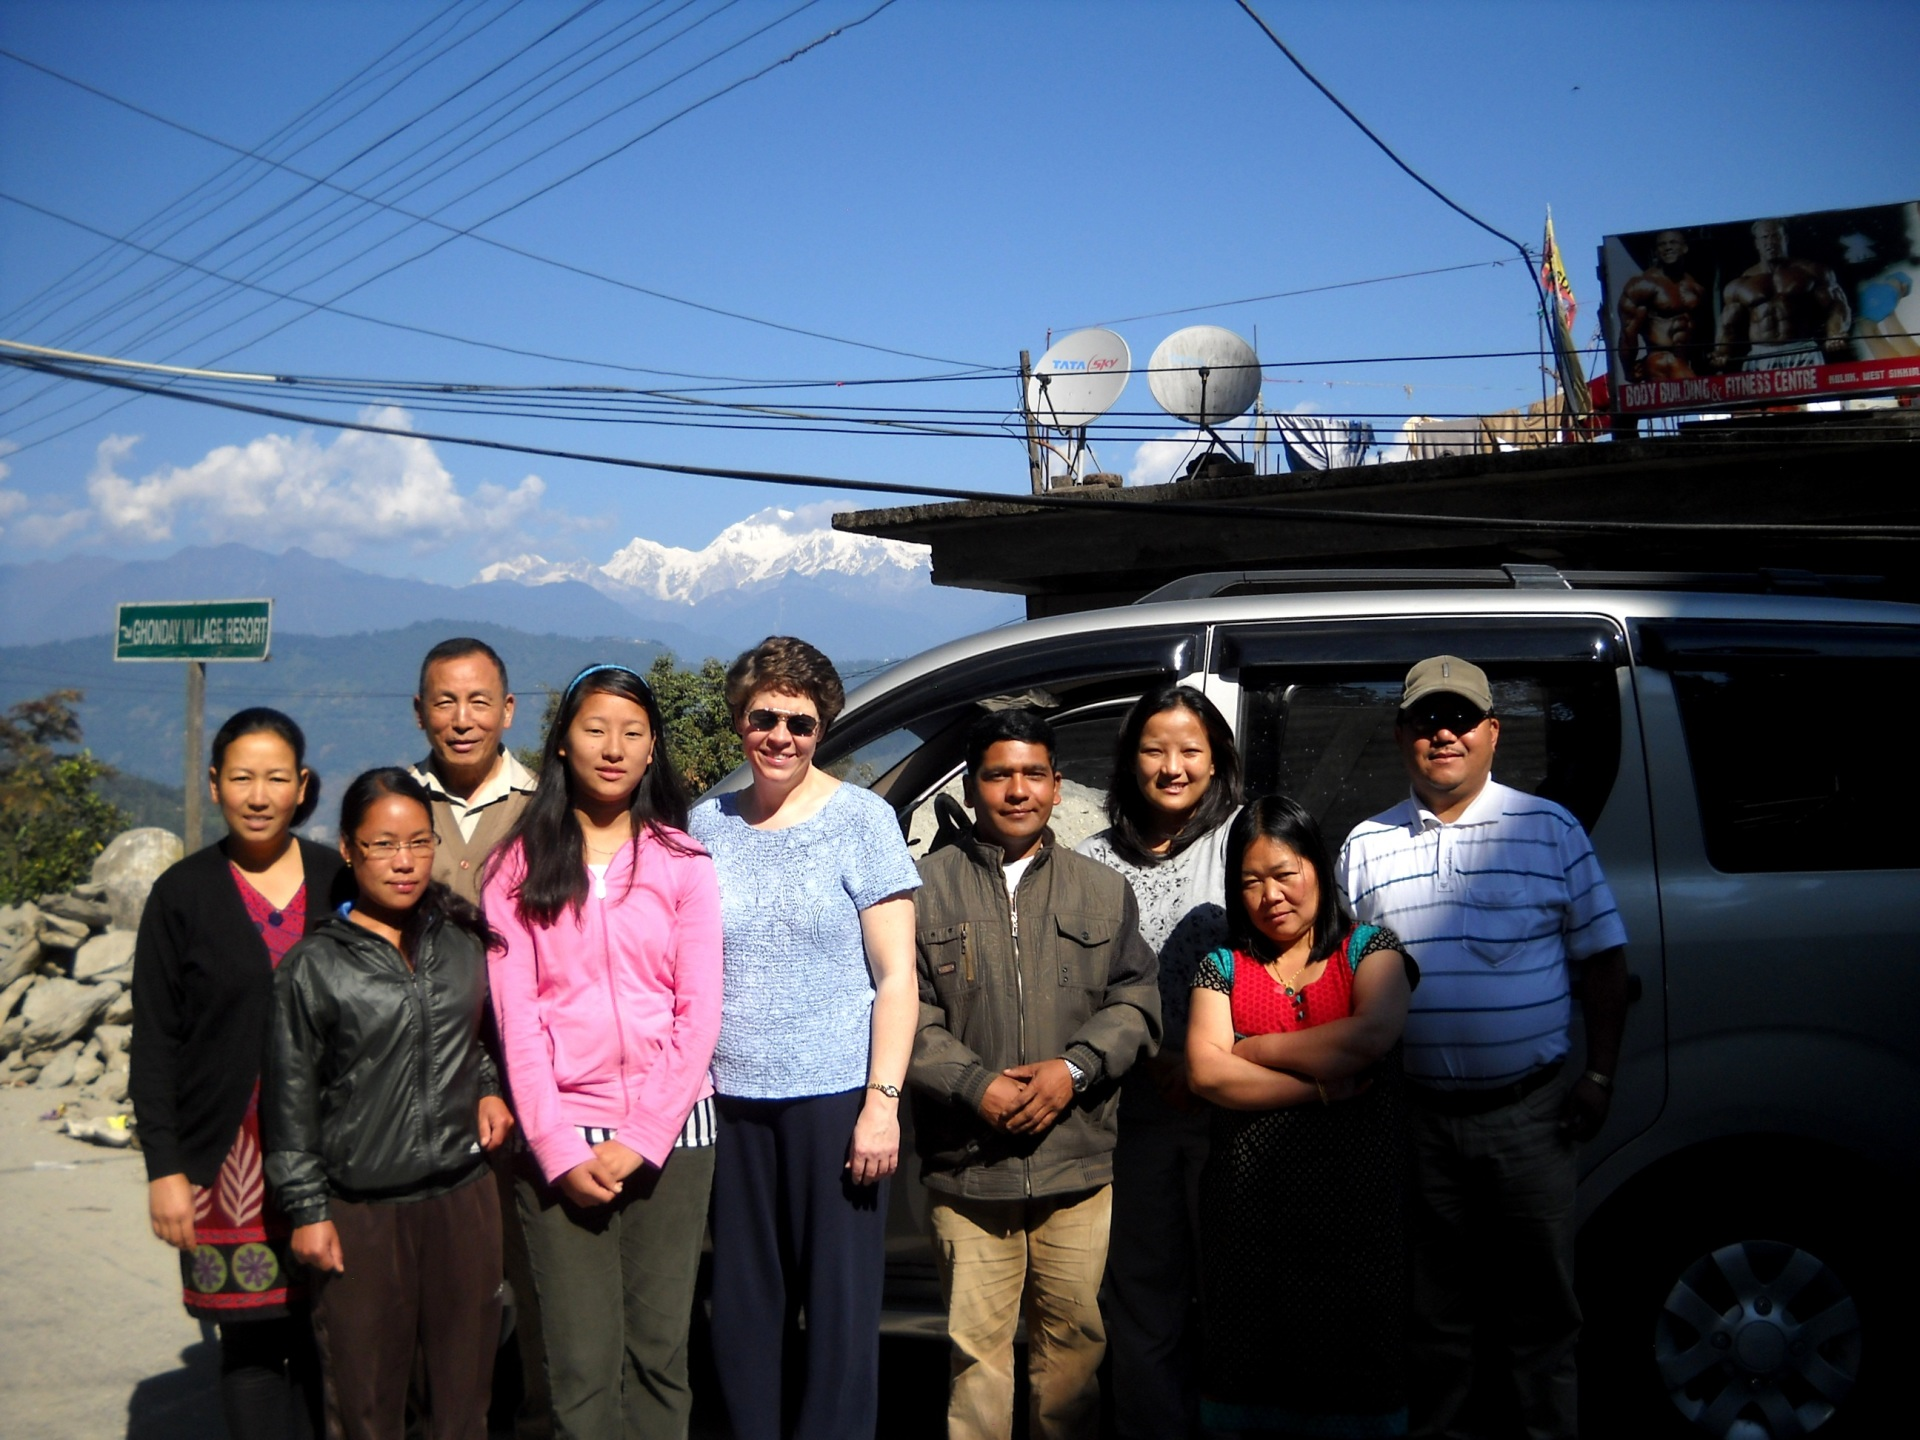 West Sikkim, Mt. Kanchenjunga in the background